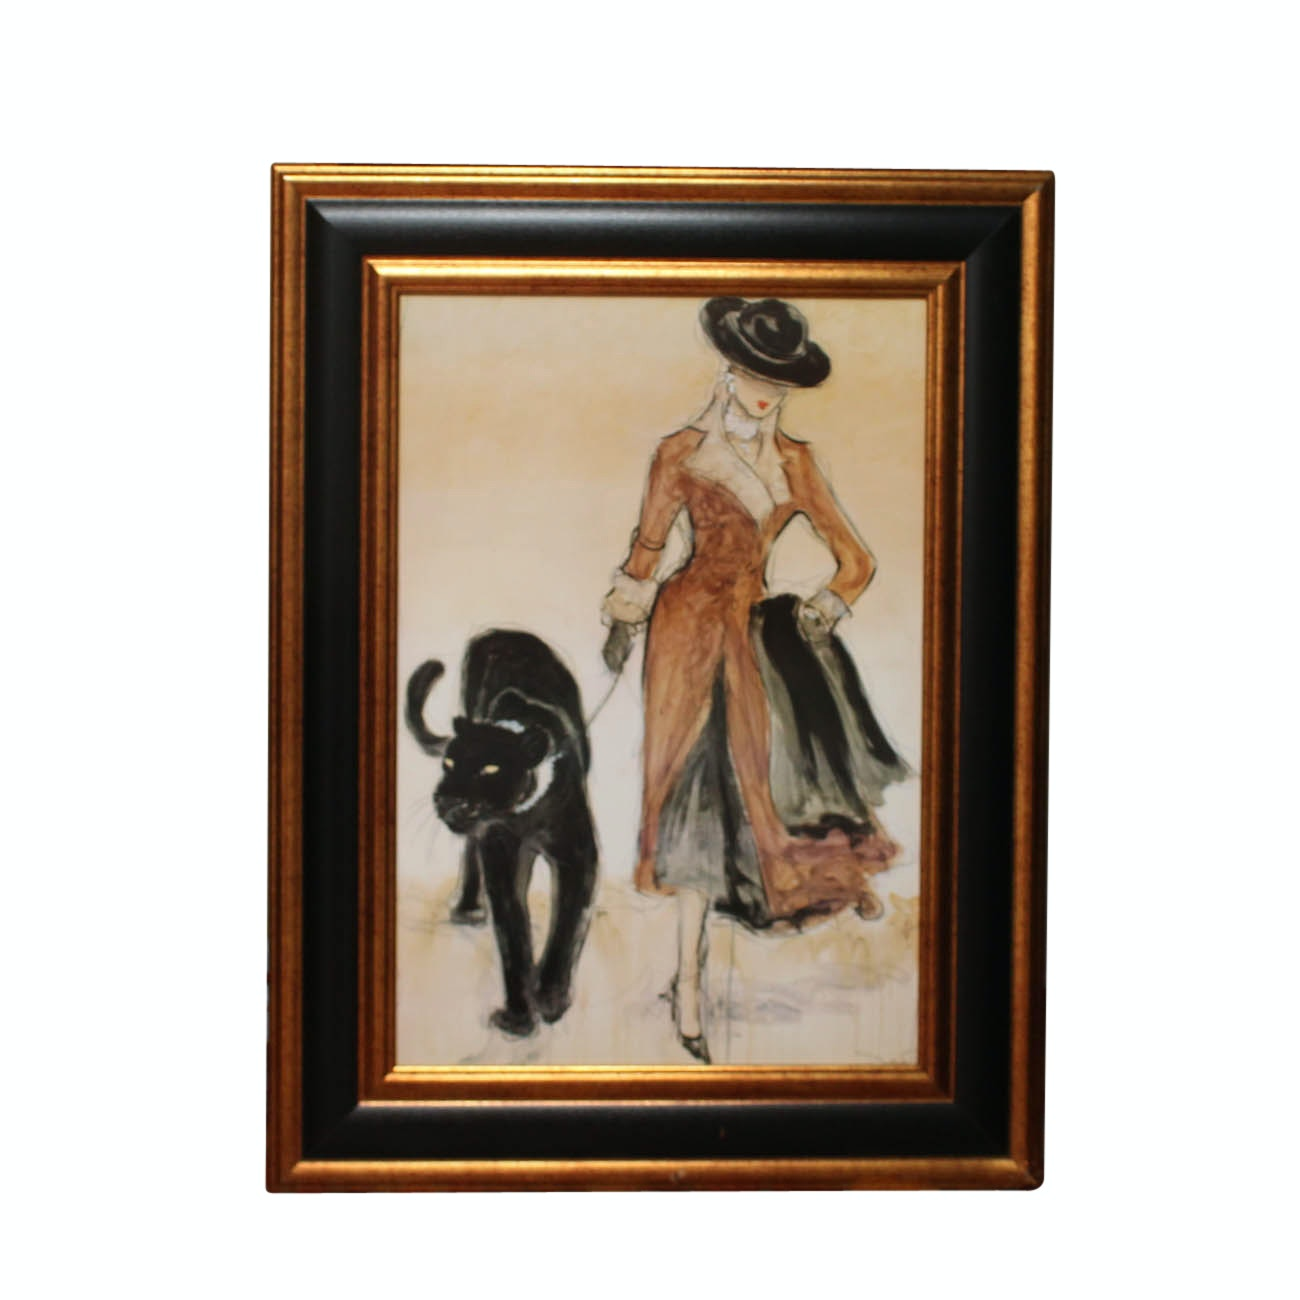 Framed Giclee Print of Woman with Panther